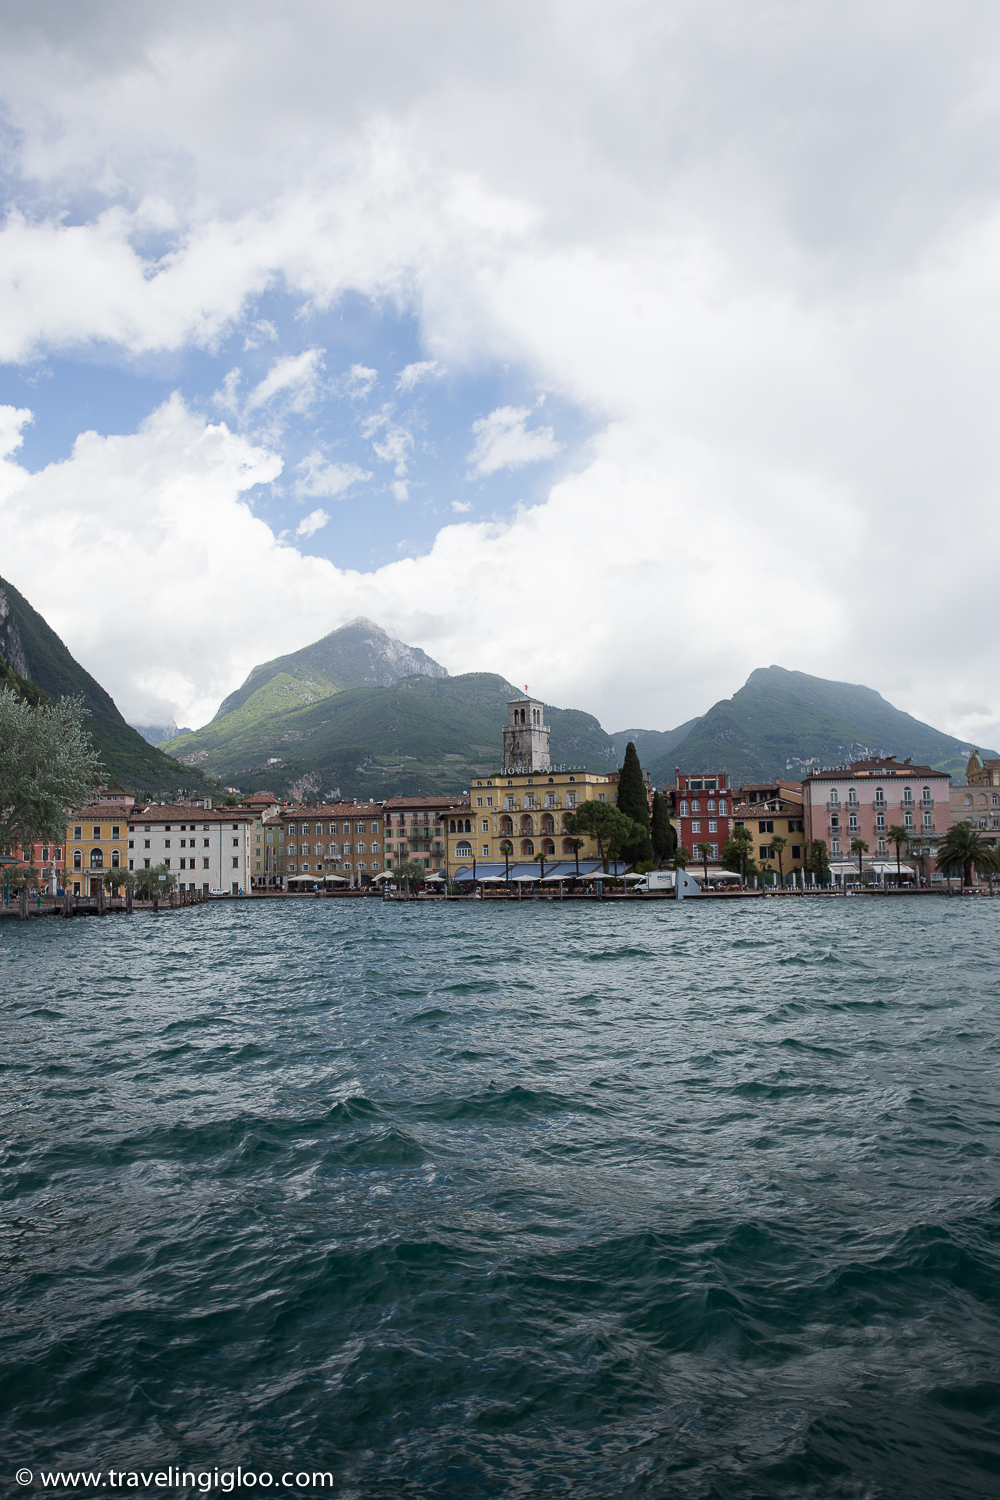 Venice-and-LakeGarda-20130520-97.jpg